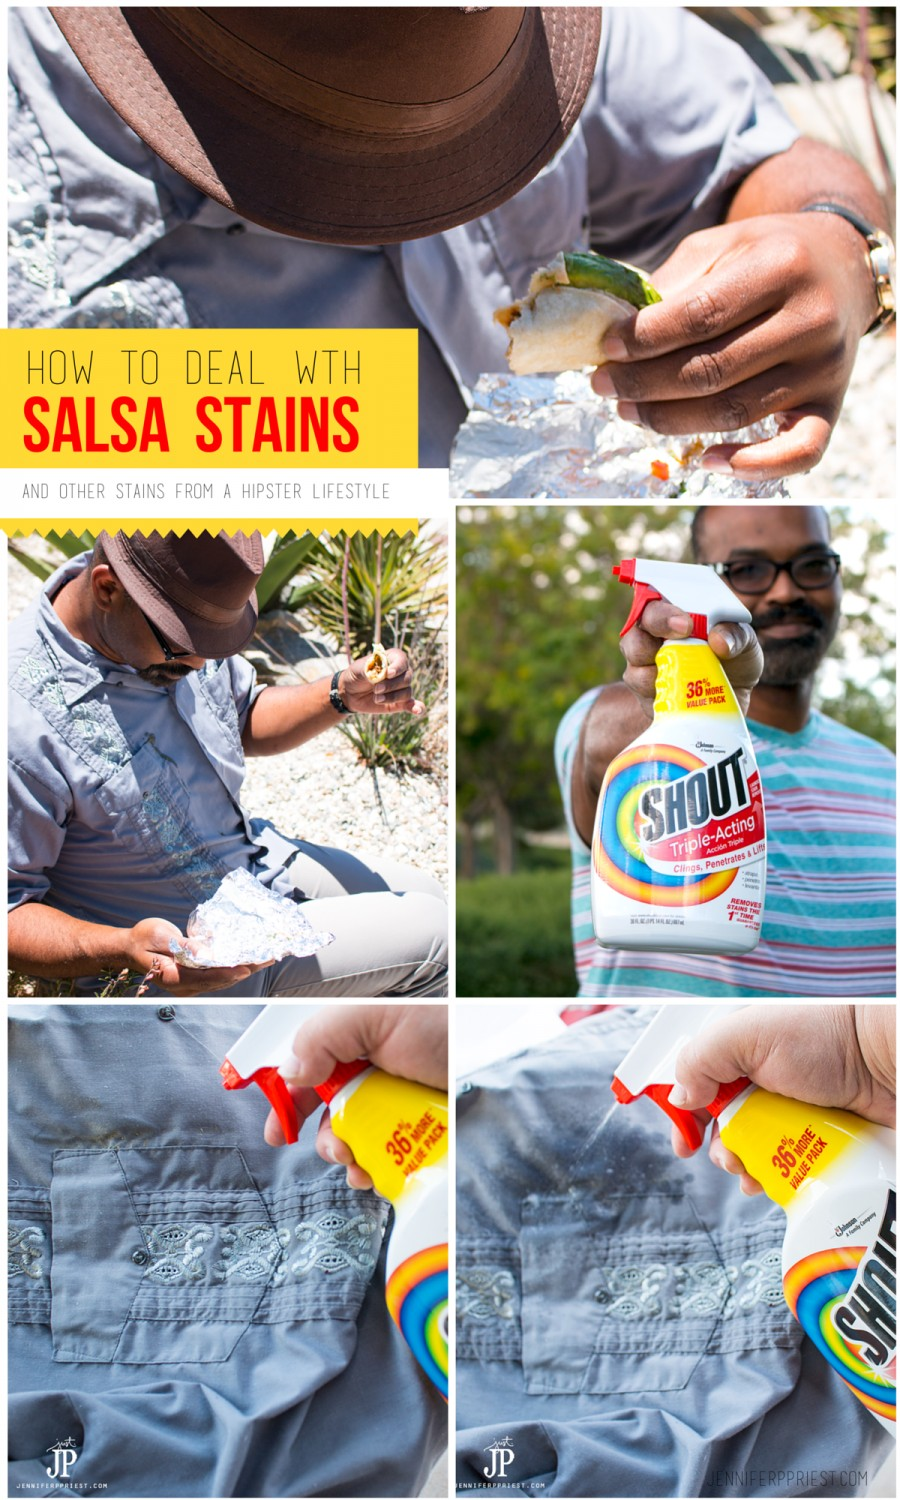 how to deal with stains jennifer priest